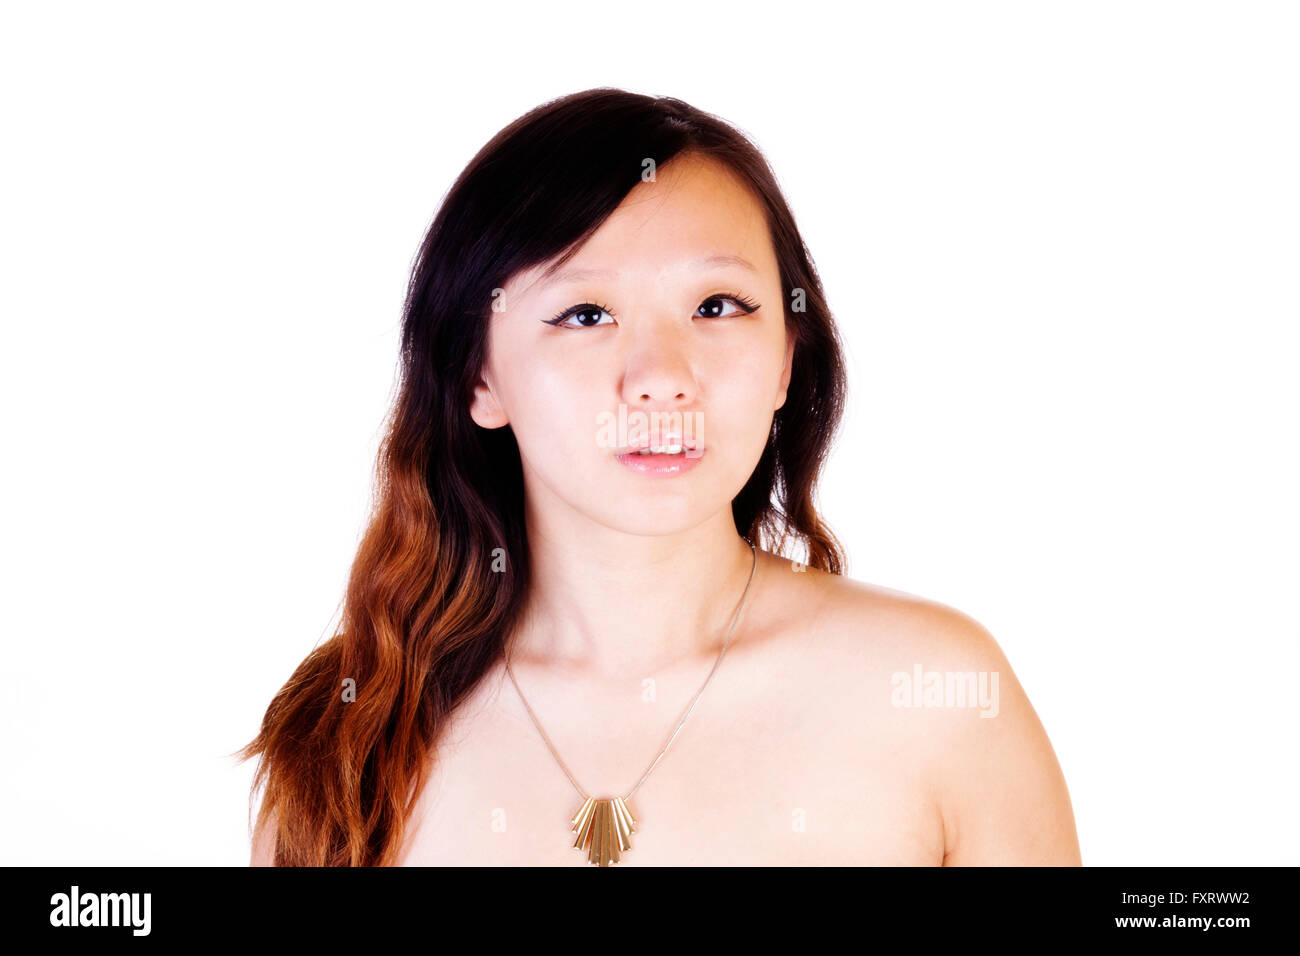 Bare Shoulder Portrait Young Chinese Woman With Necklace - Stock Image